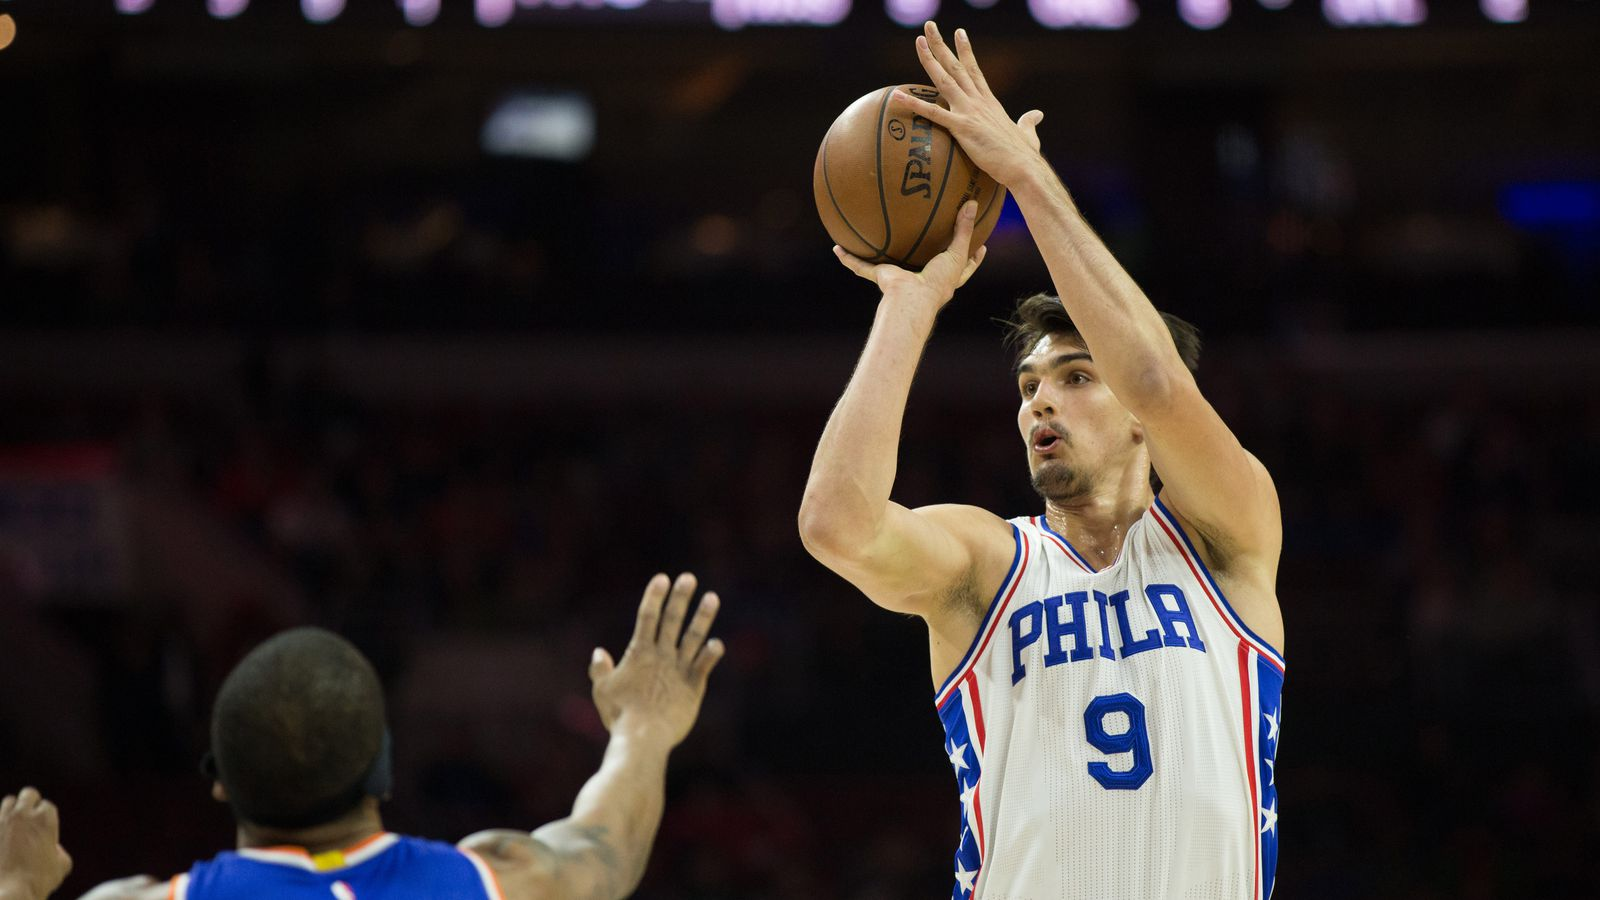 Sixers-Knicks final score: Dario Saric leads his team to a crunch-time win - Liberty Ballers